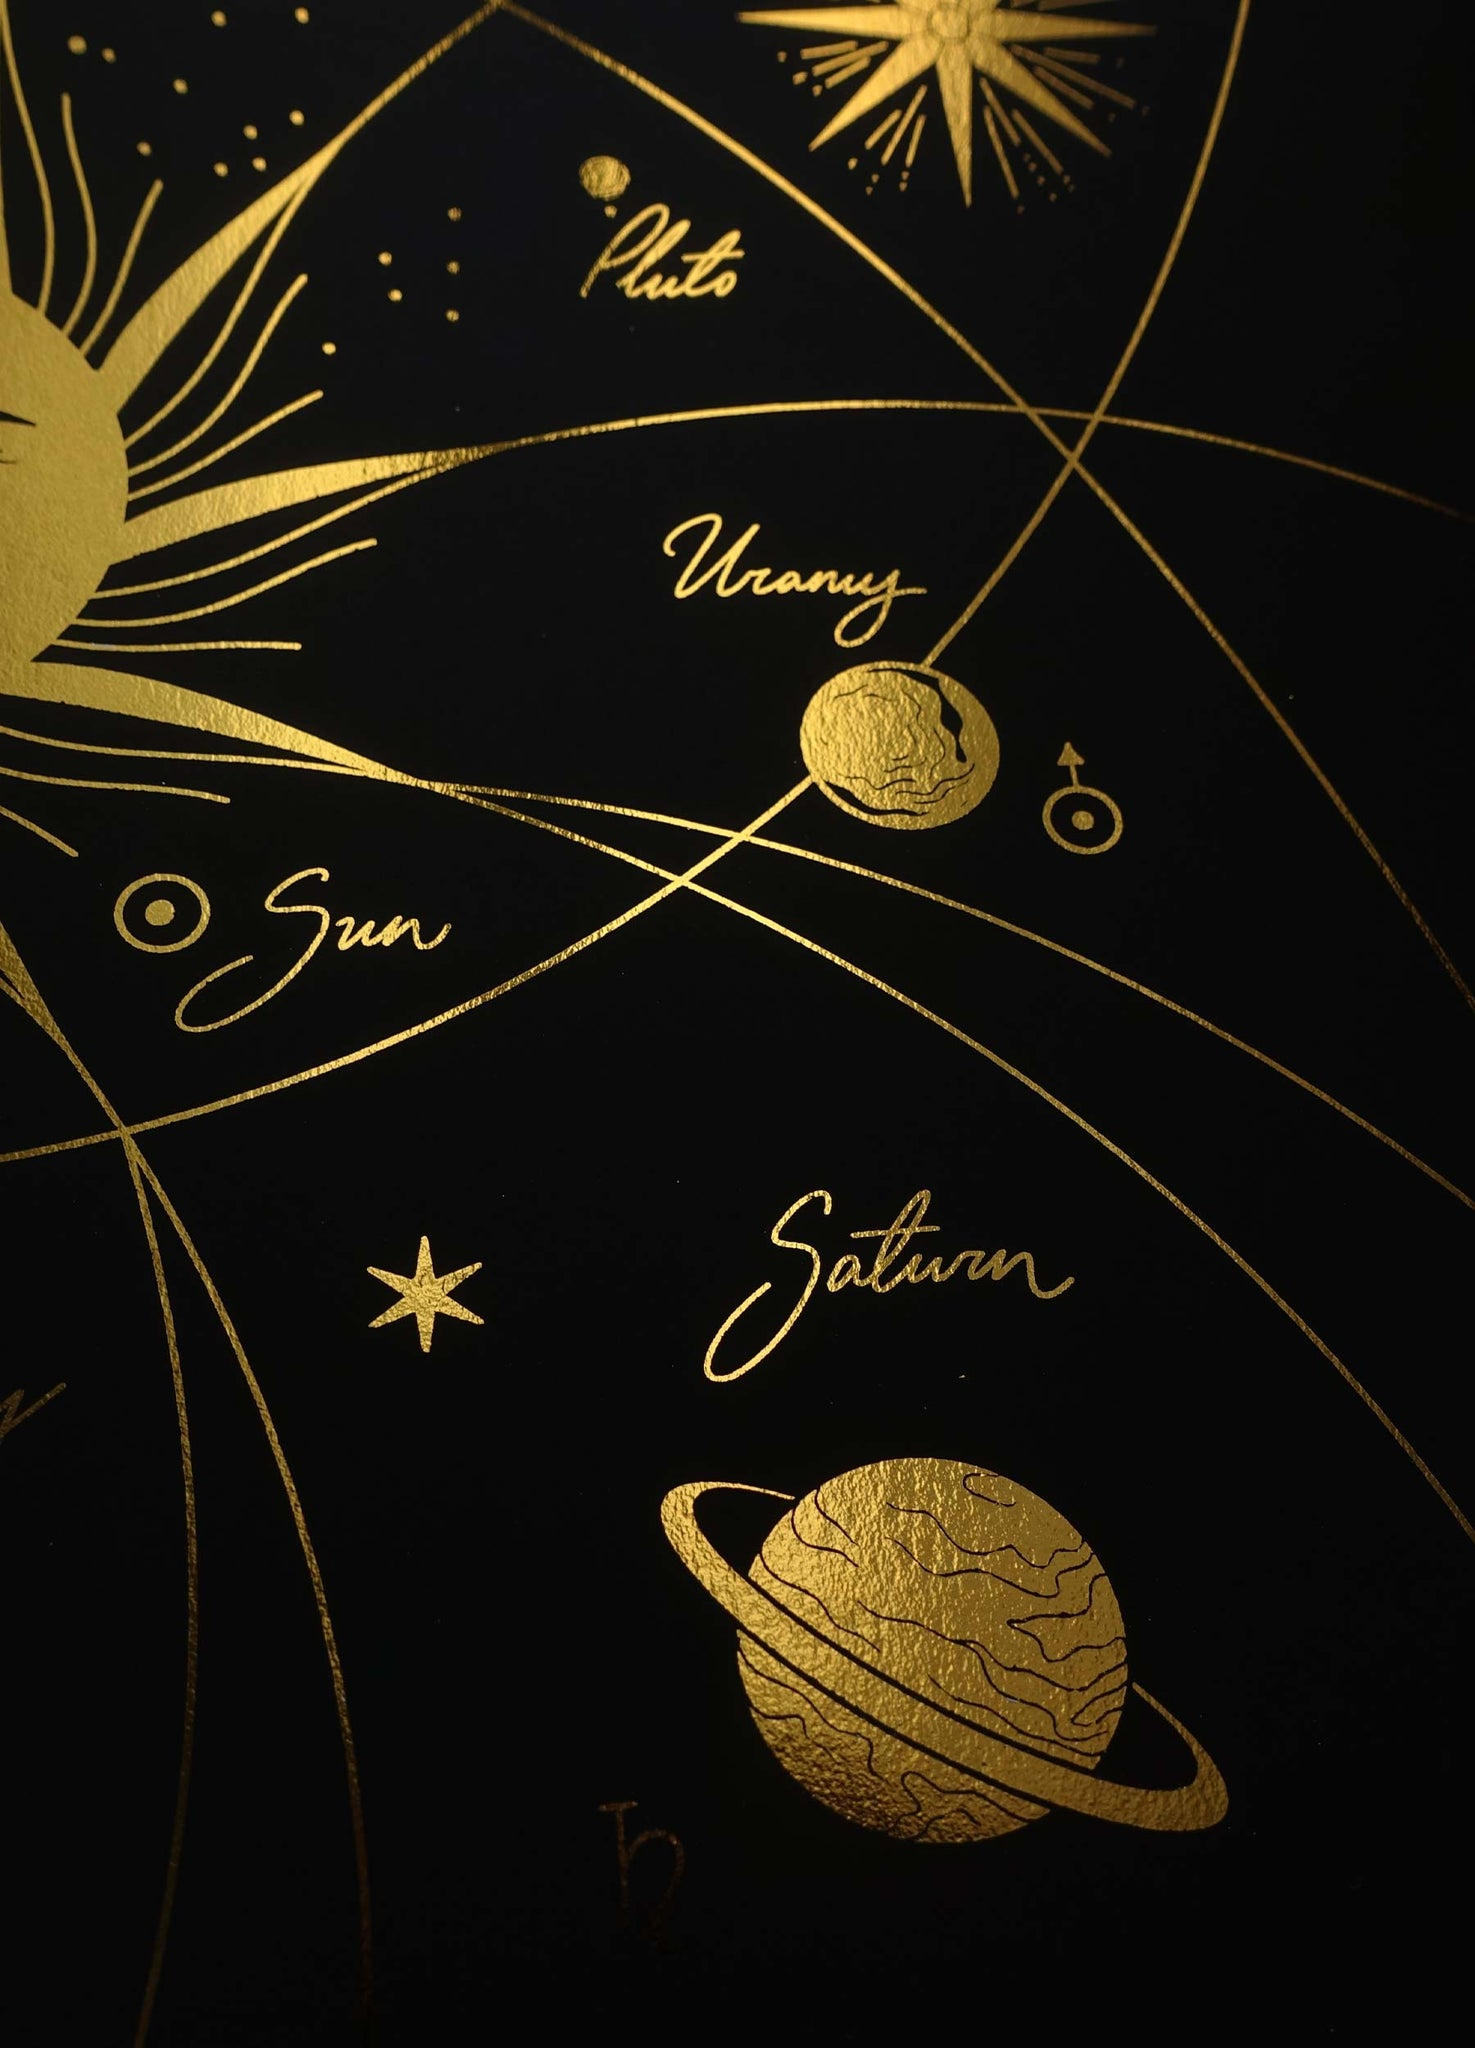 Solar System gold foil art print on black paper by Cocorrina & Co